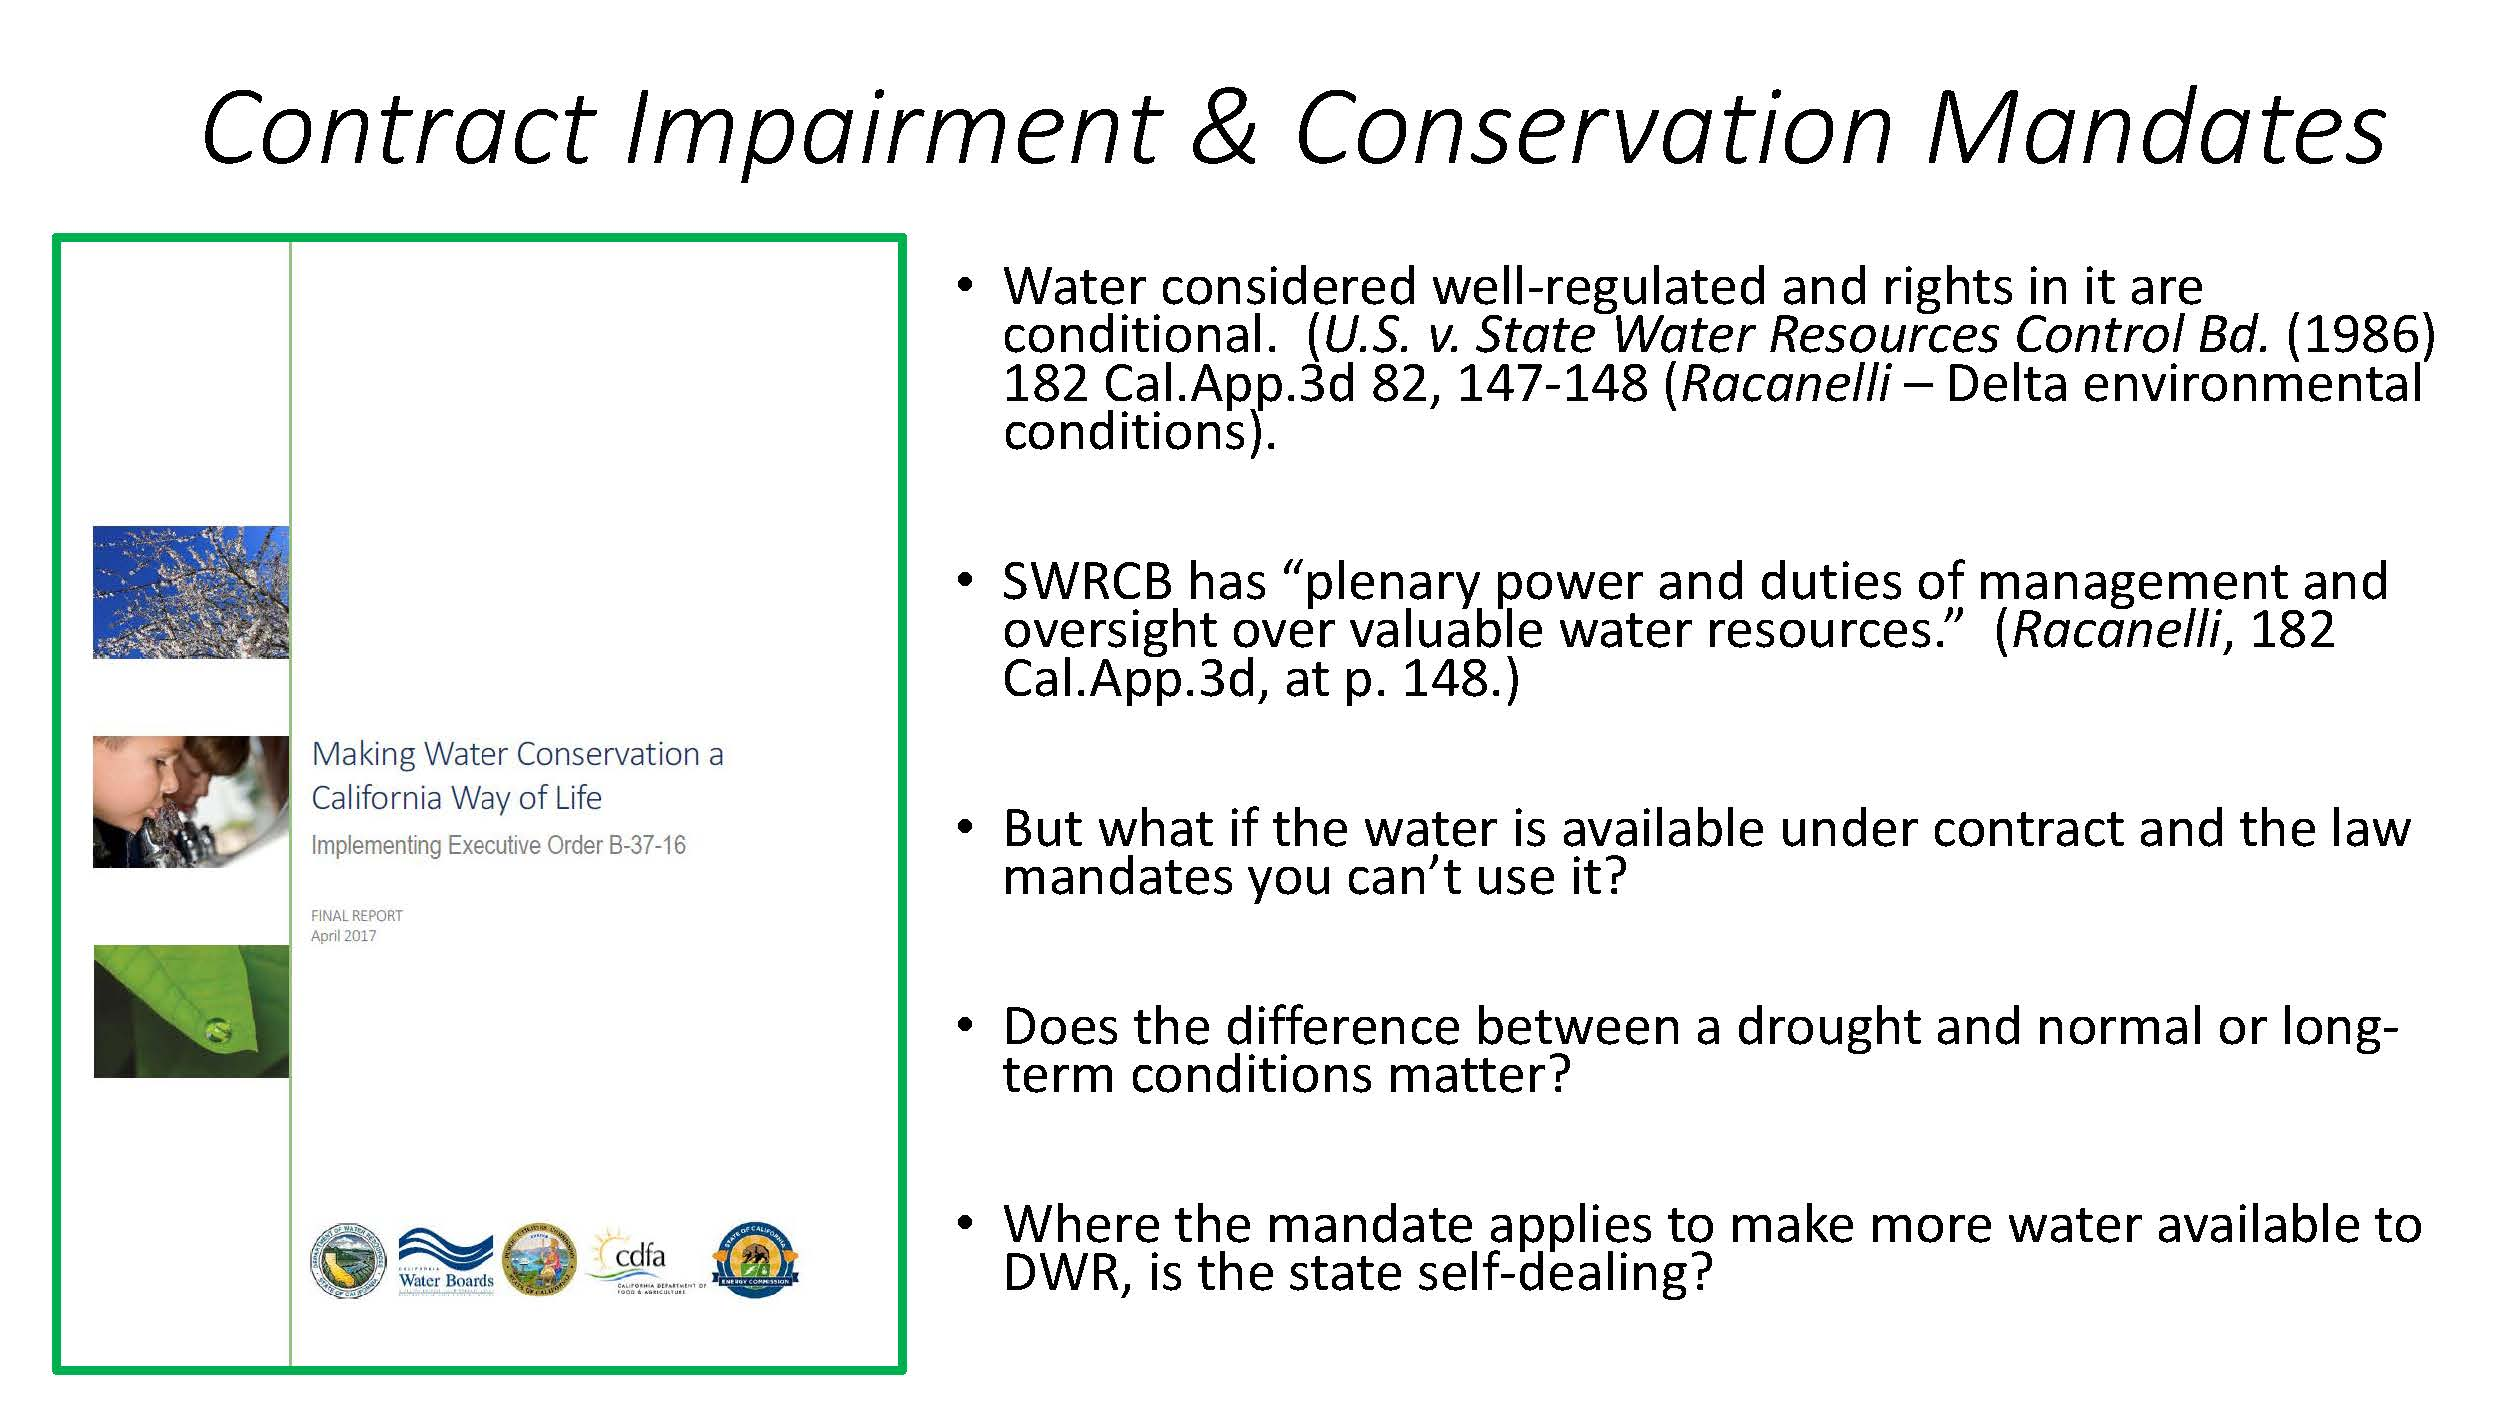 PANEL: Legal issues associated with water conservation mandates